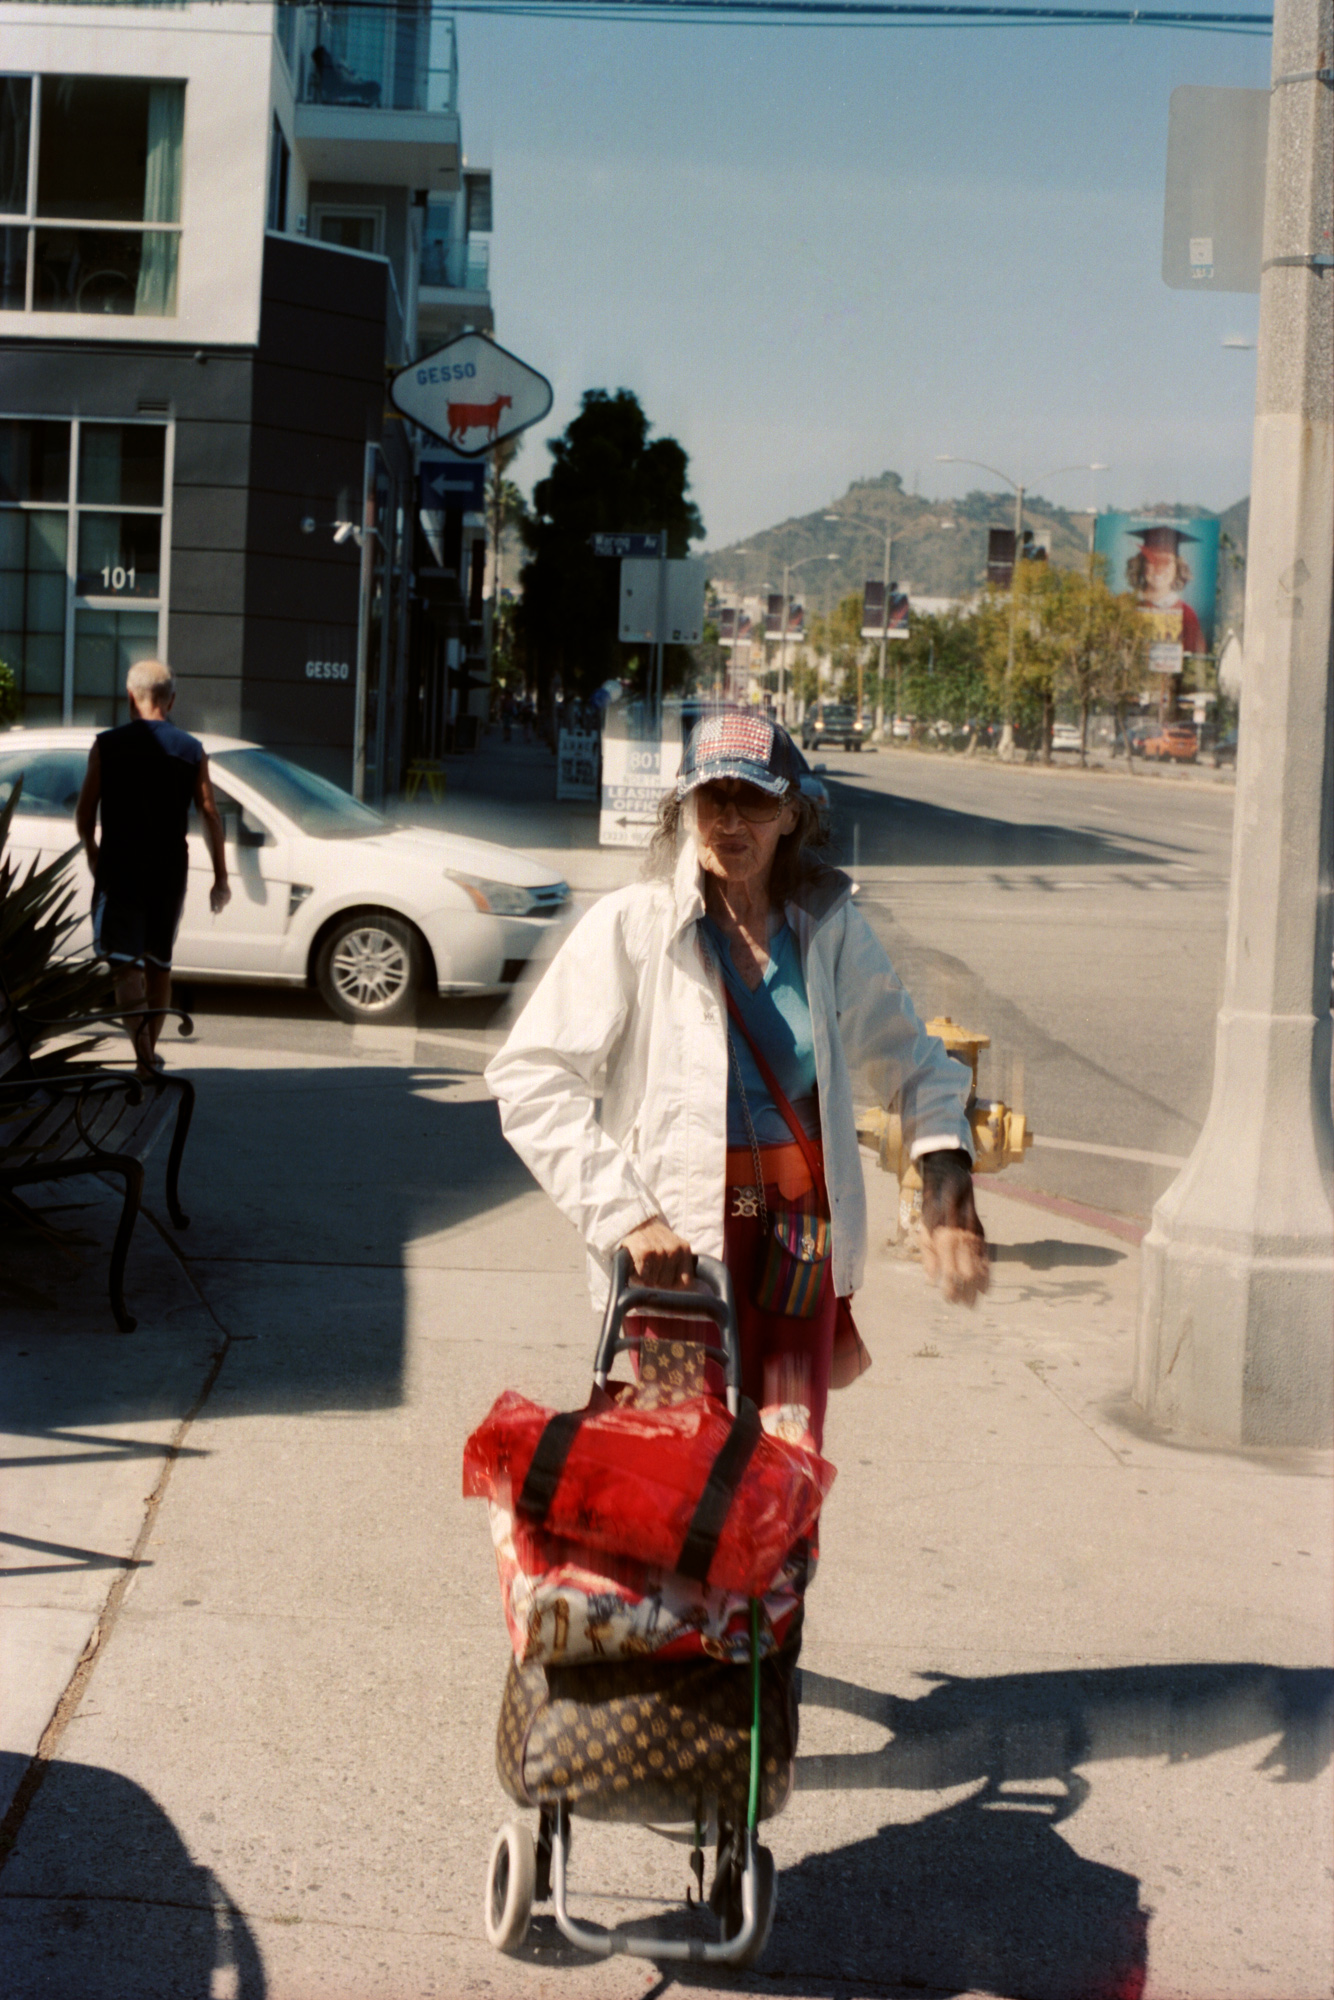 All Amercia woman with her stroller, Los Angeles, Omg Your English, photography By Ioannis Koussertari